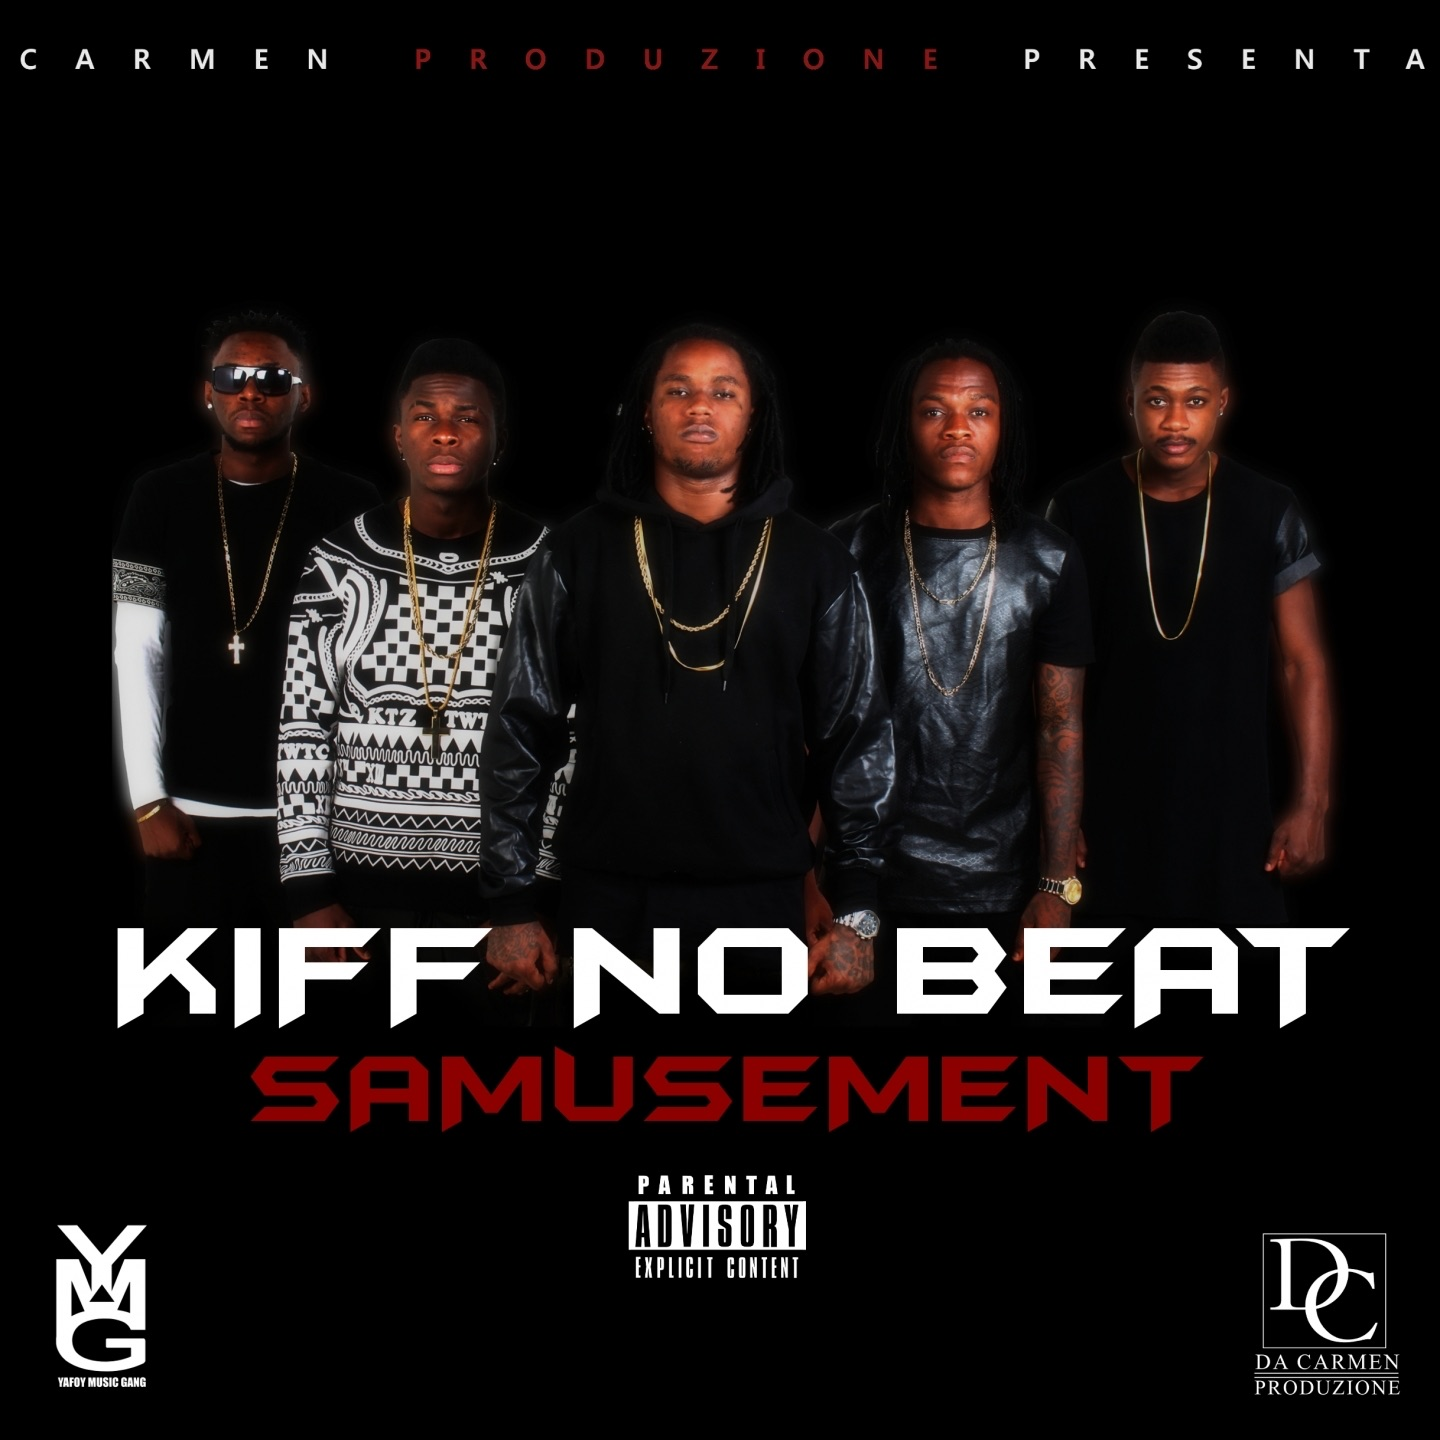 for Album de kiff no beat